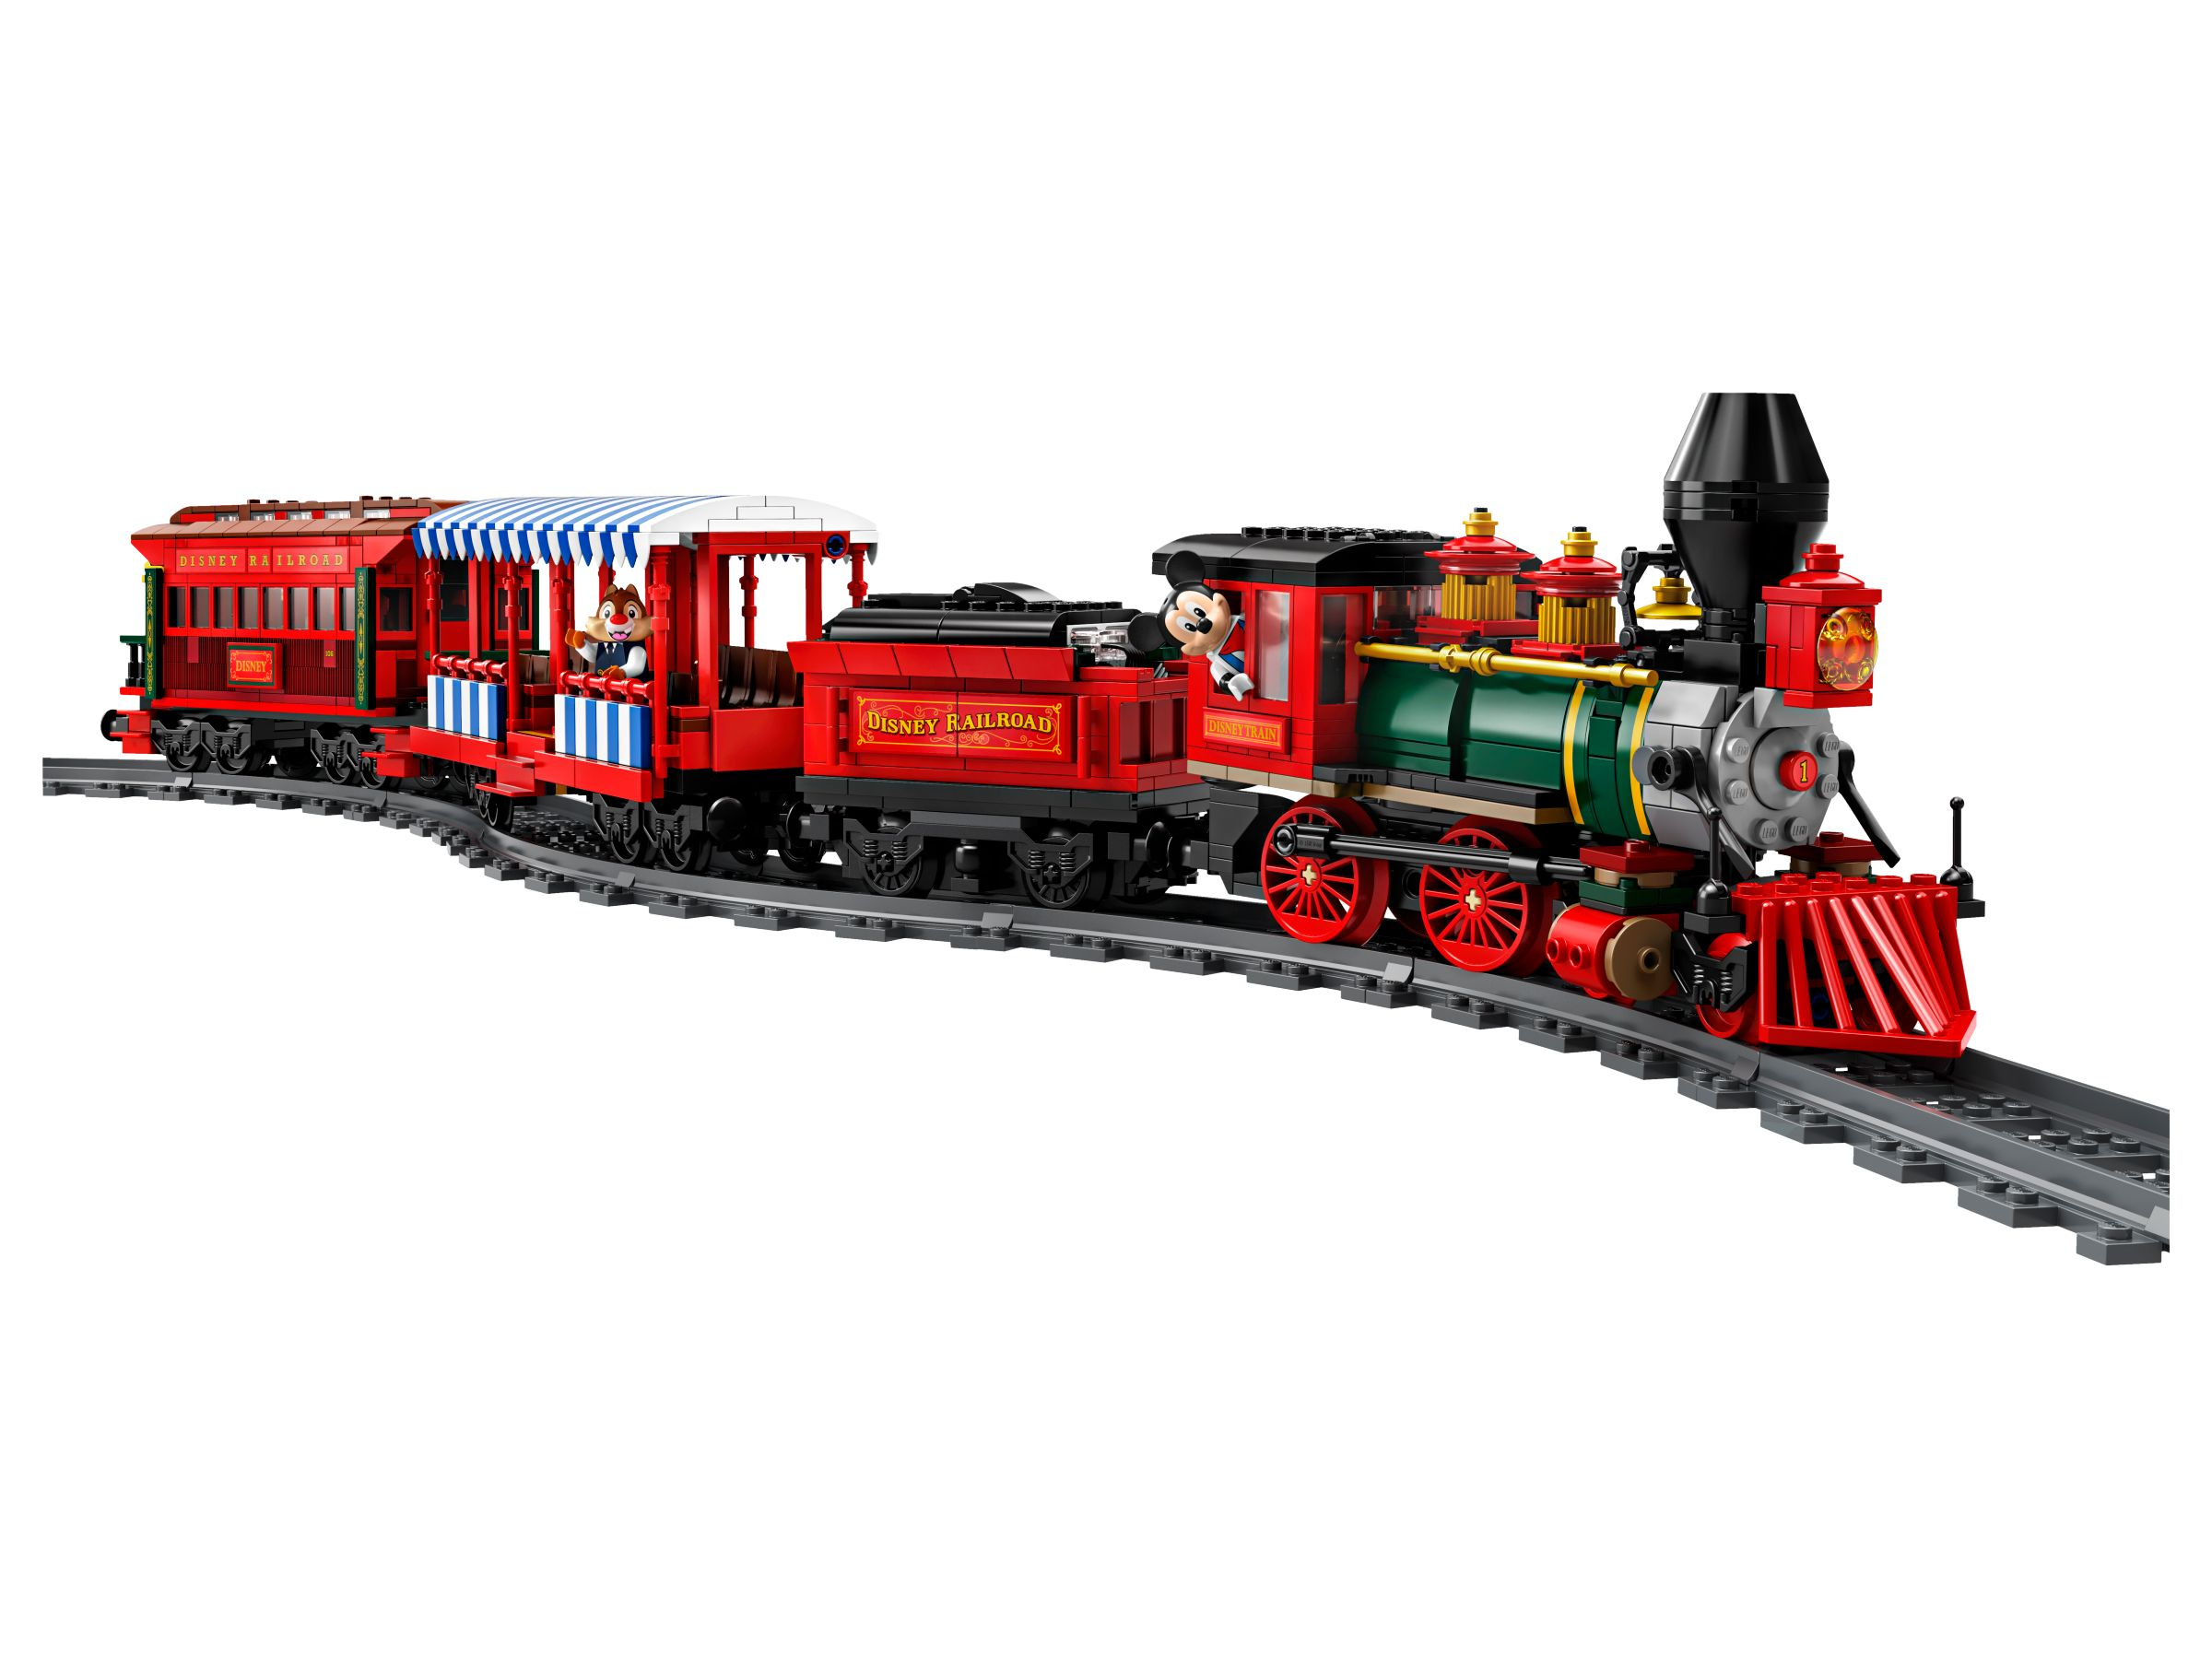 LEGO Advanced Models 71044 Disney Zug mit Bahnhof LEGO_71044_alt10.jpg